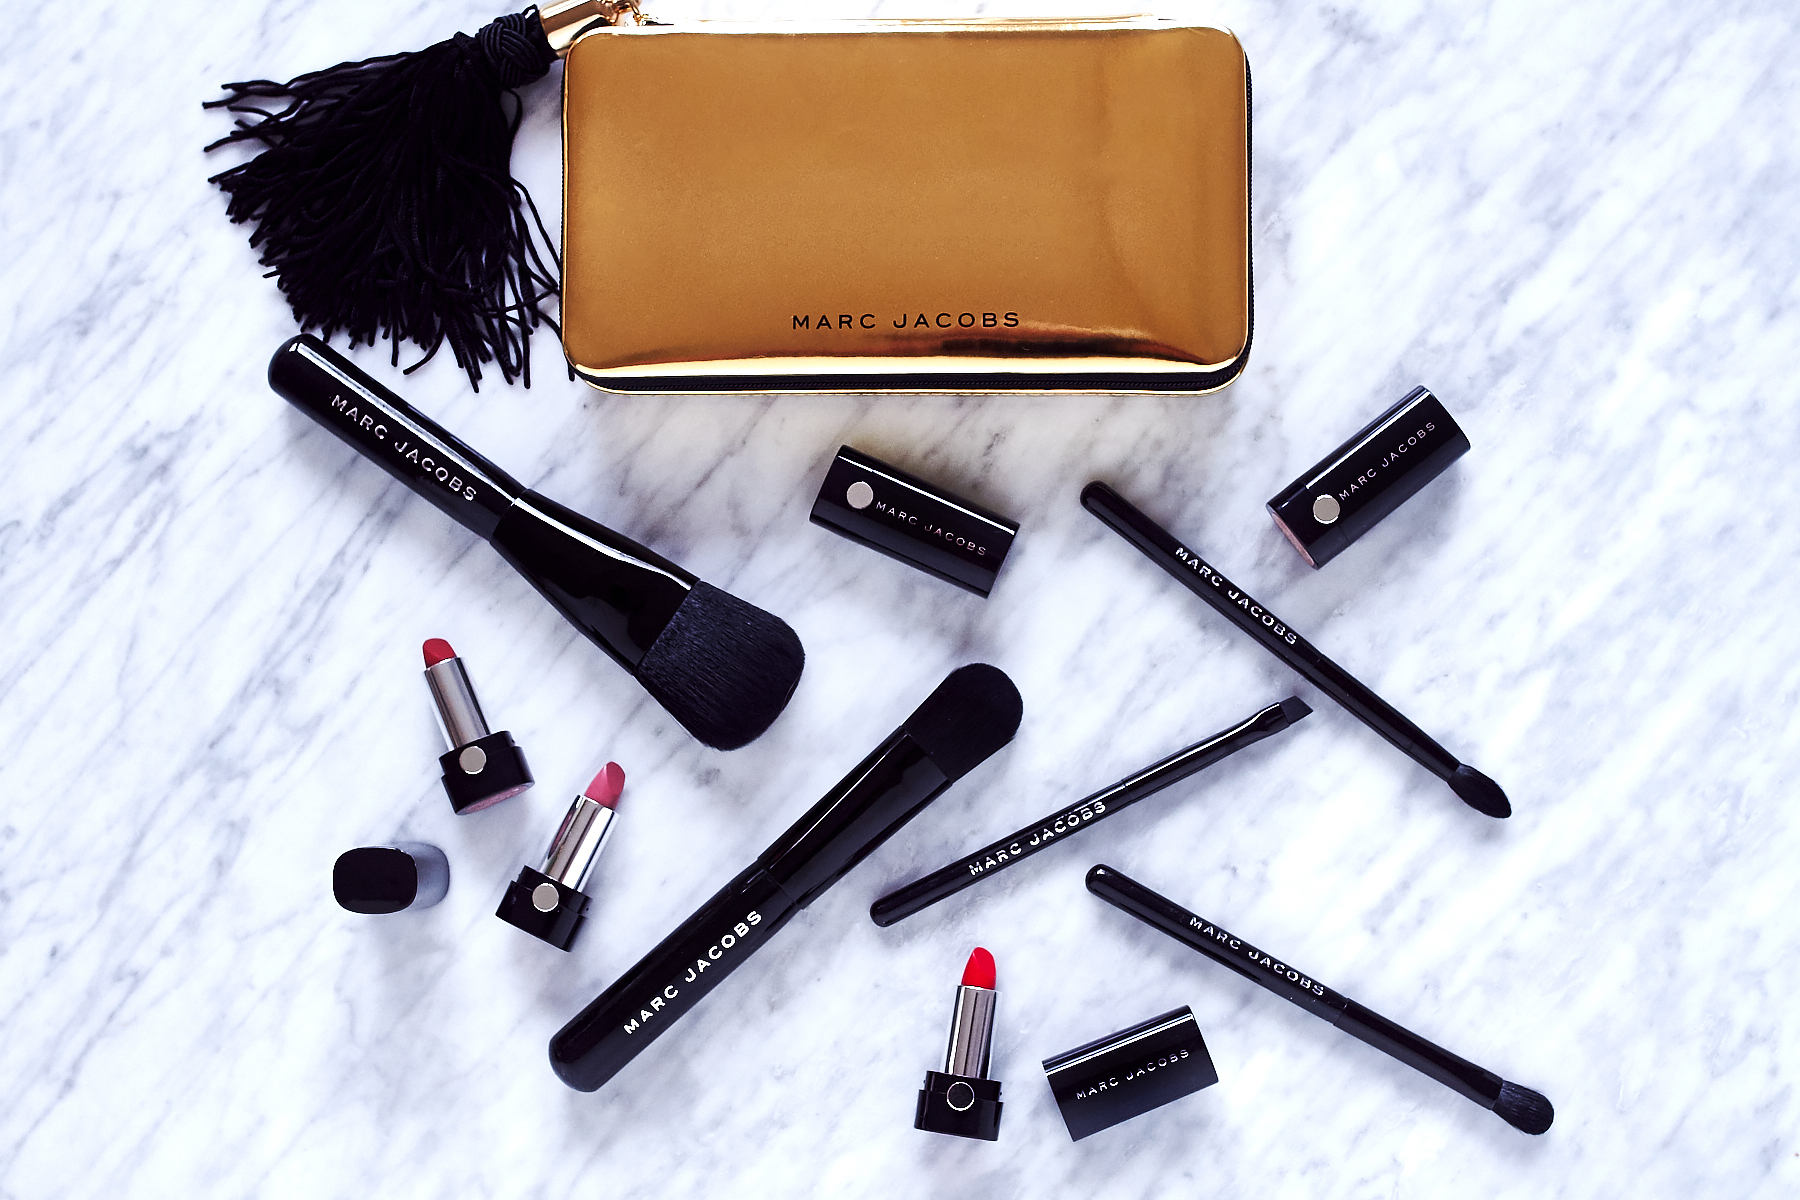 Marc Jacobs Lipsticks, Marc Jacobs Makeup Brushes, Beauty